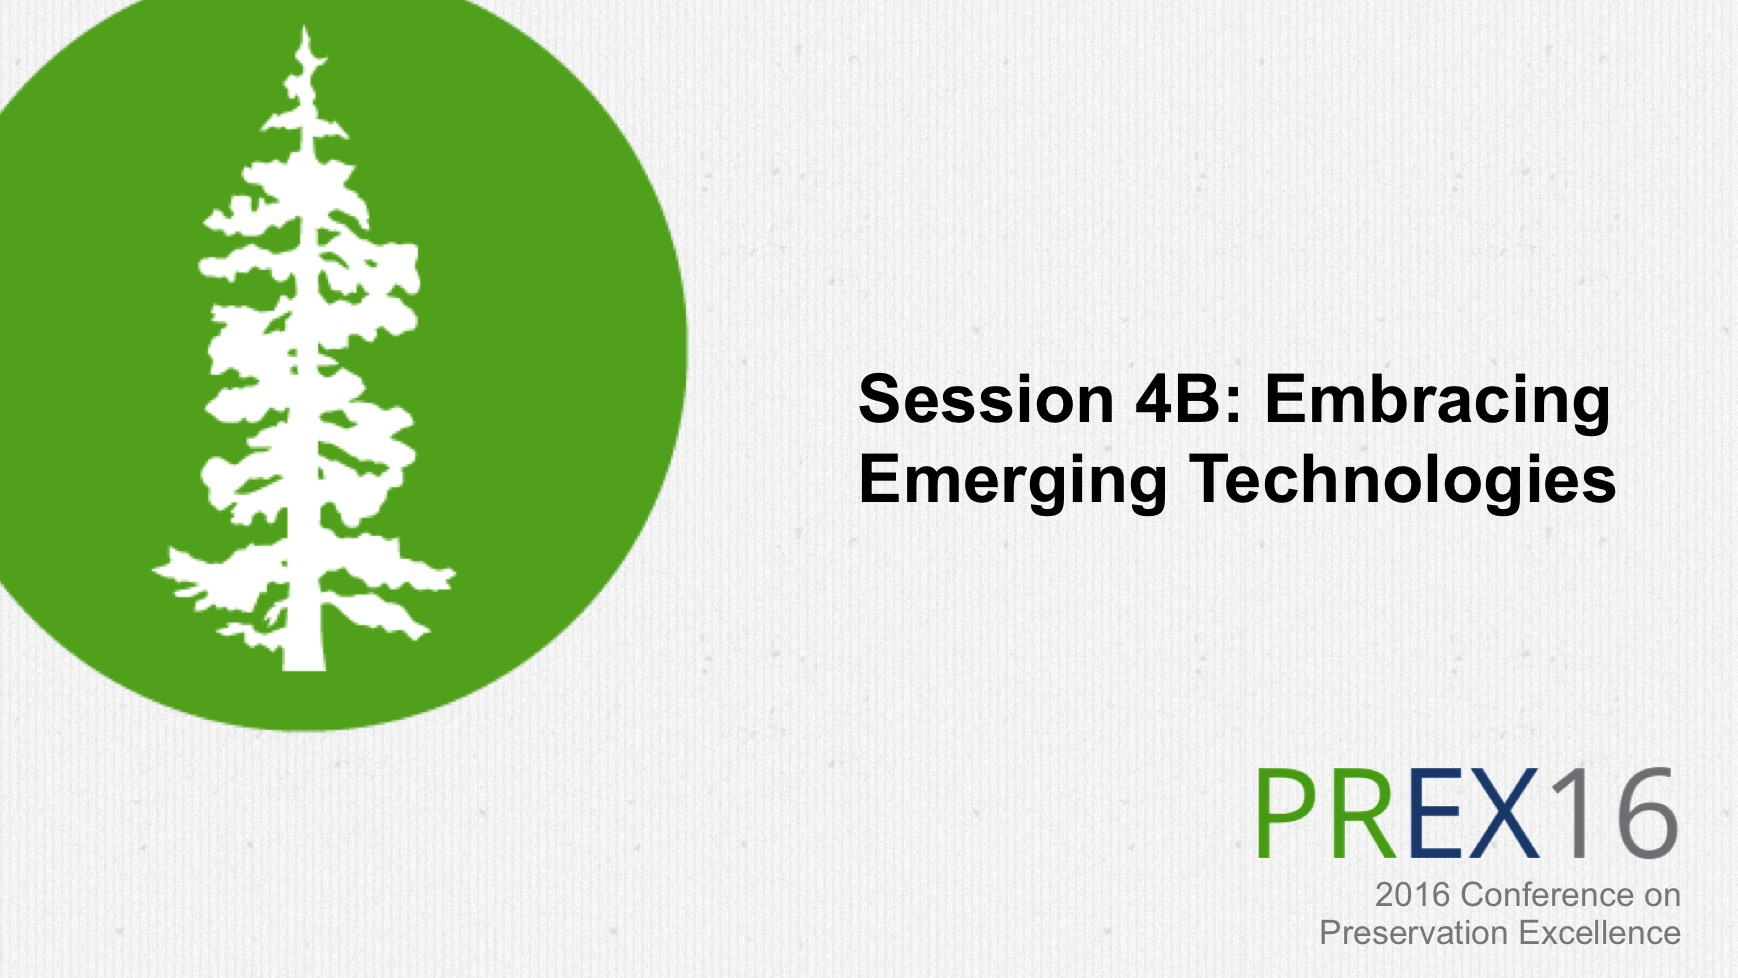 Session 4B: Embracing Emerging Technologies